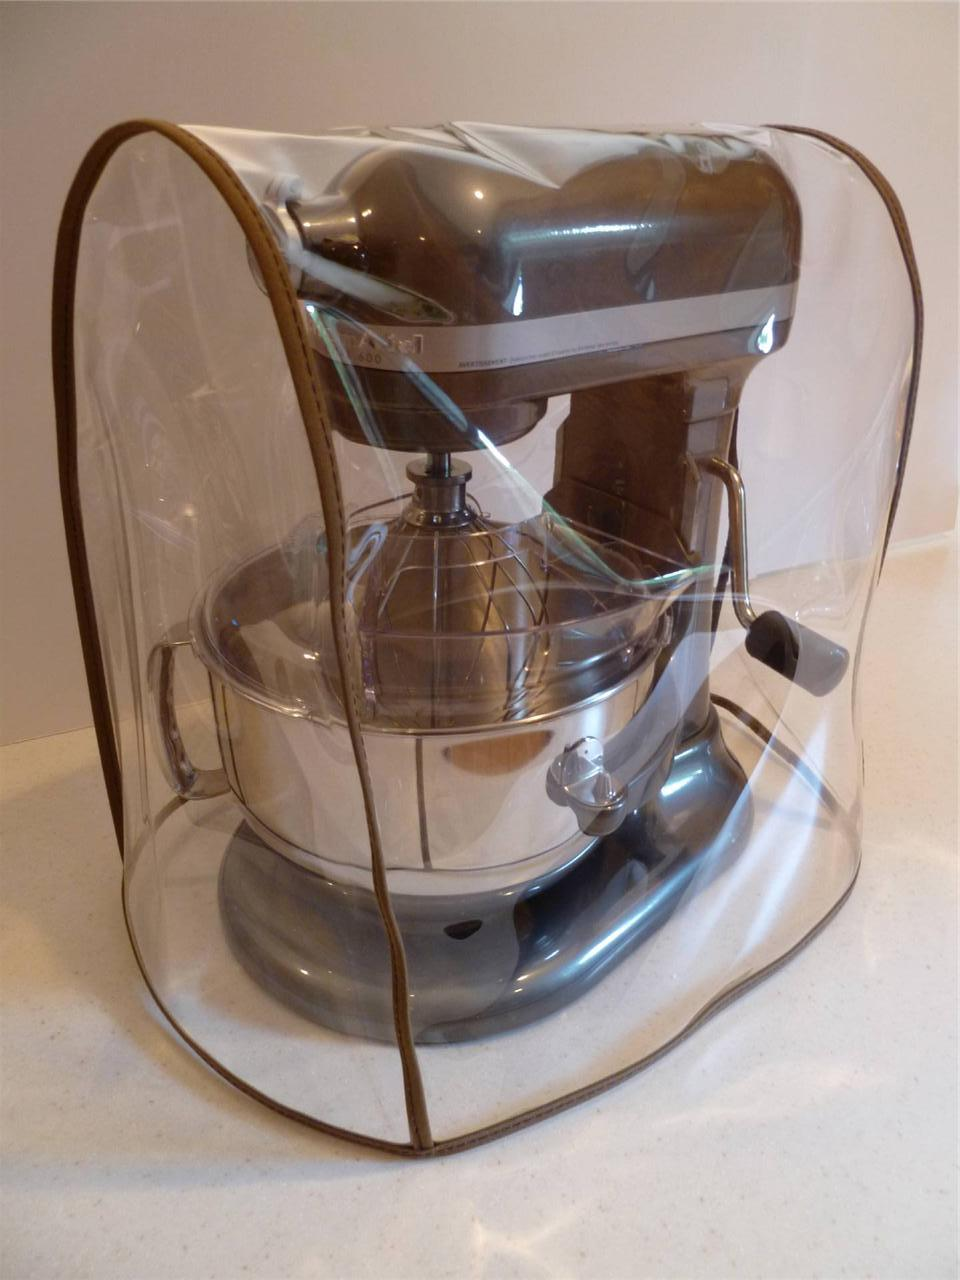 CLEAR MIXER COVER Fits KitchenAid Bowl Lift Mixer COCOA